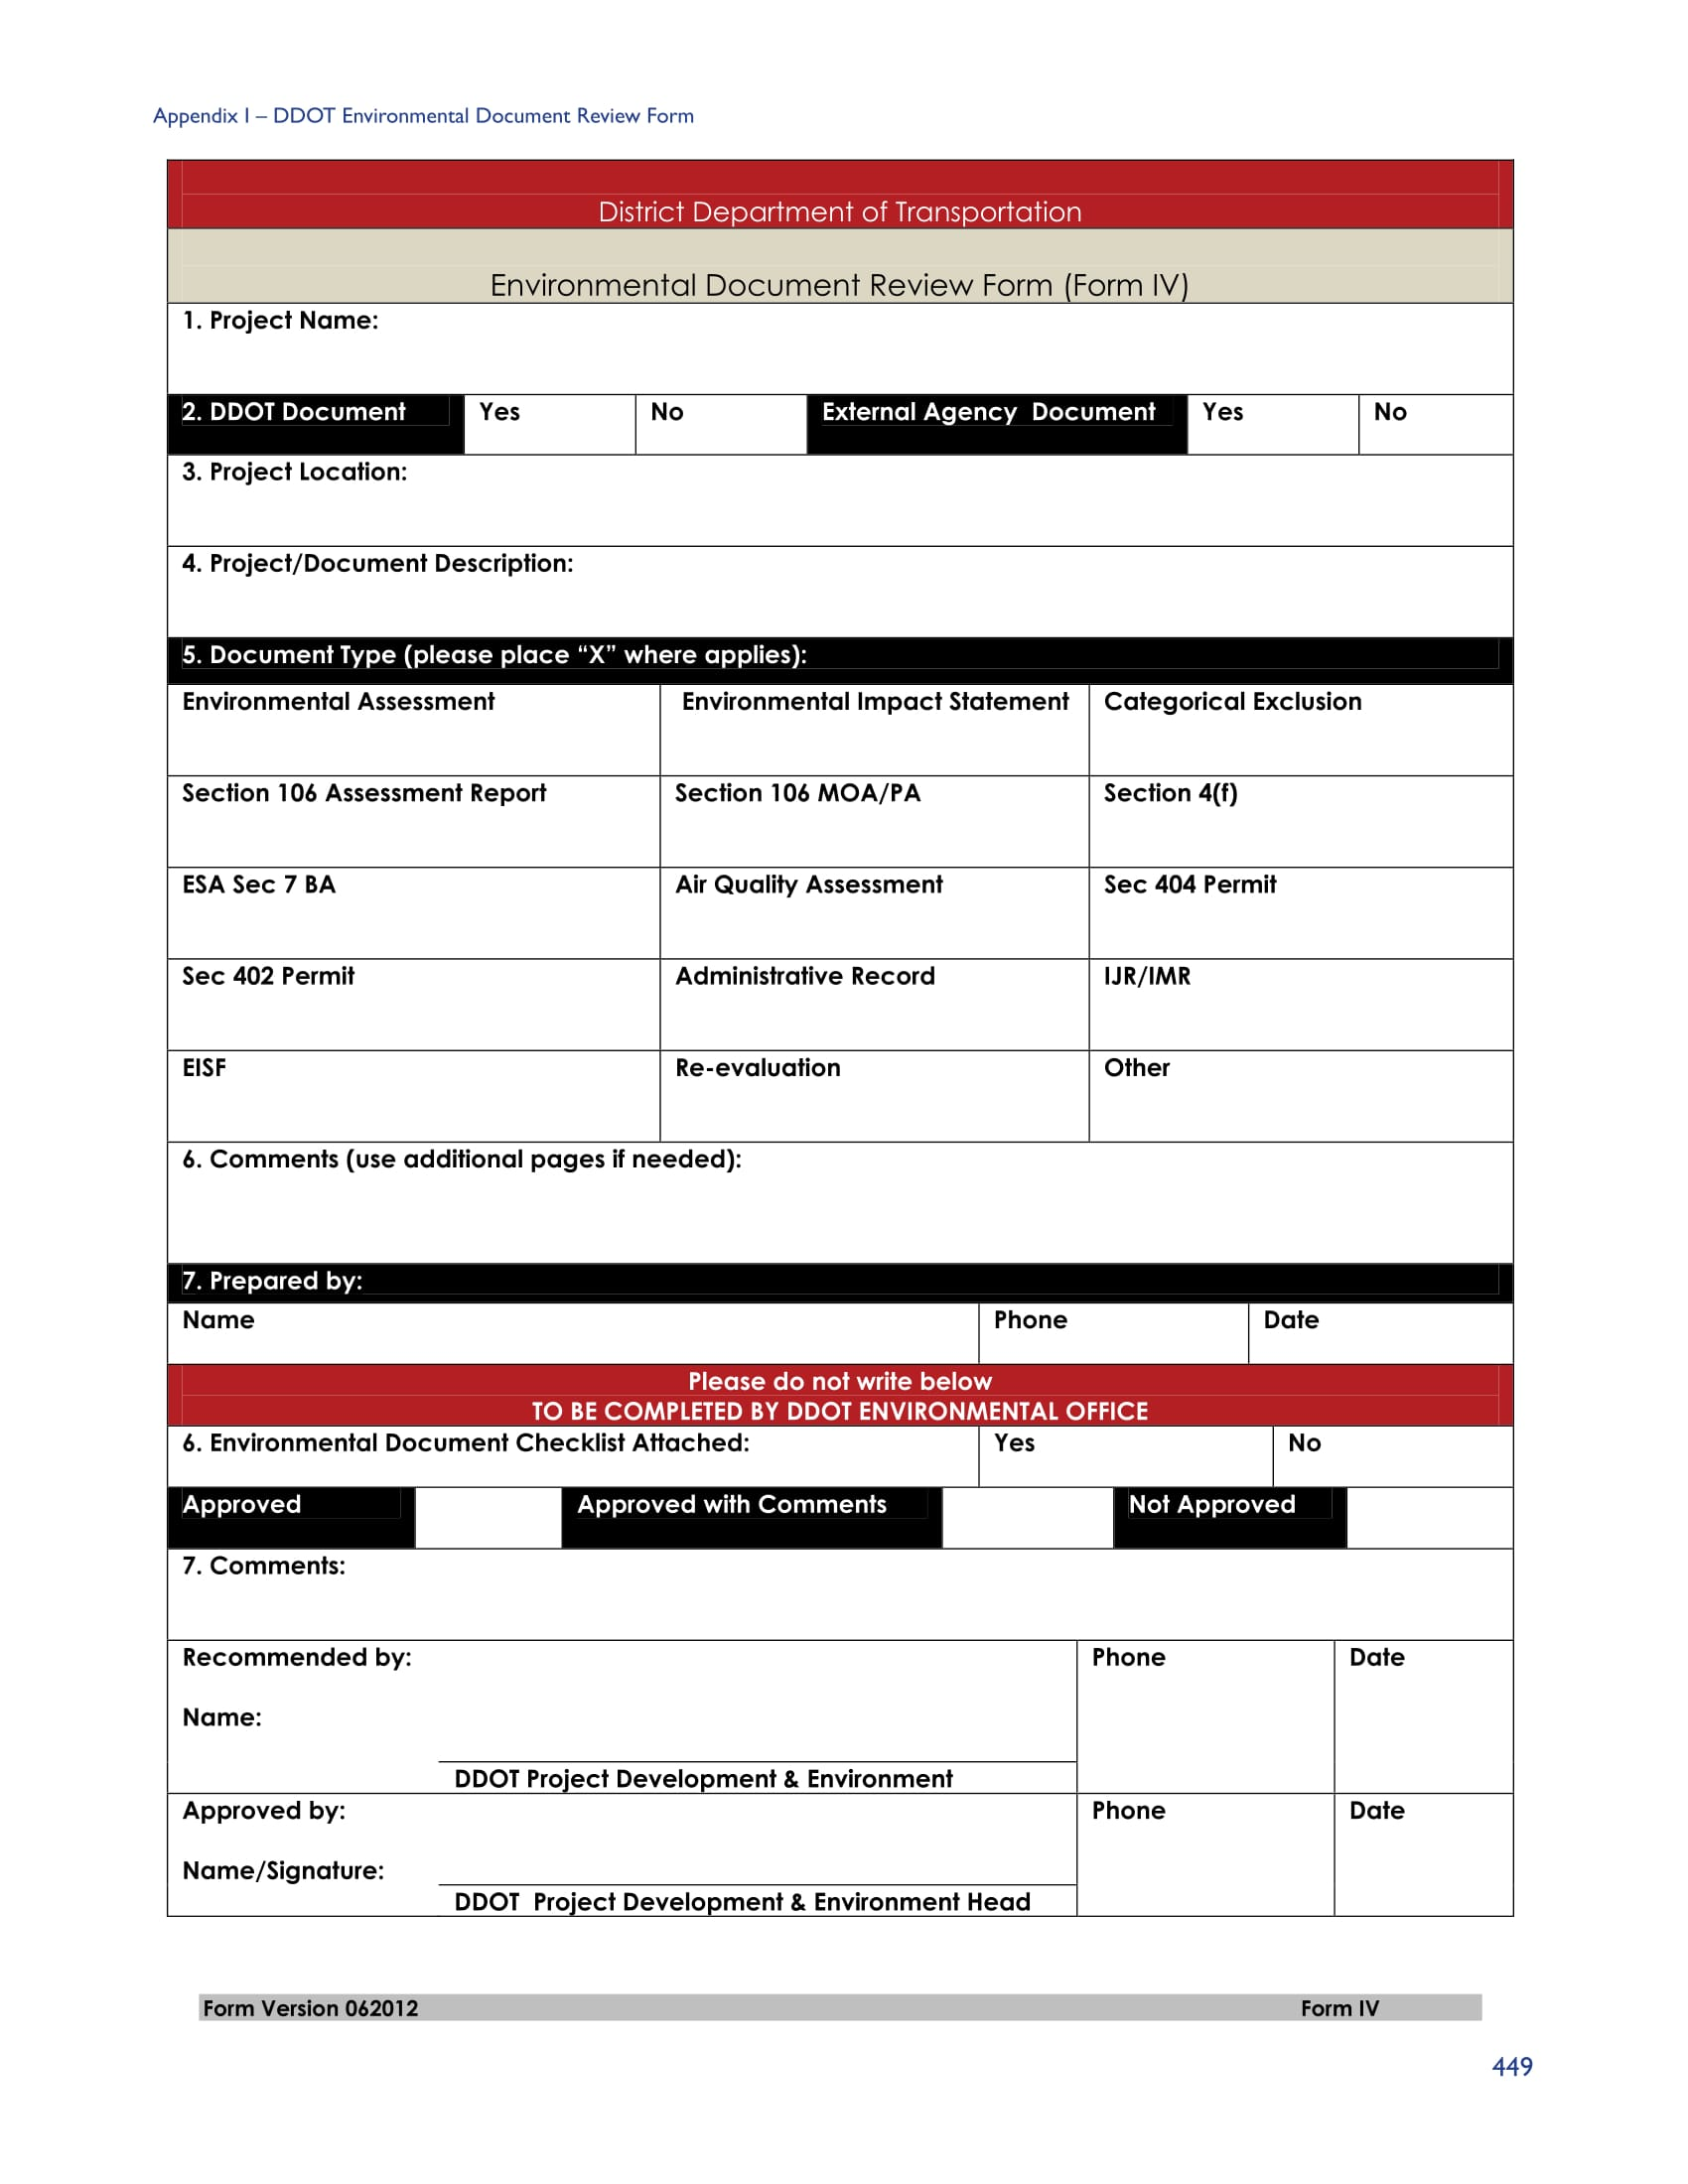 environmental document review form 3